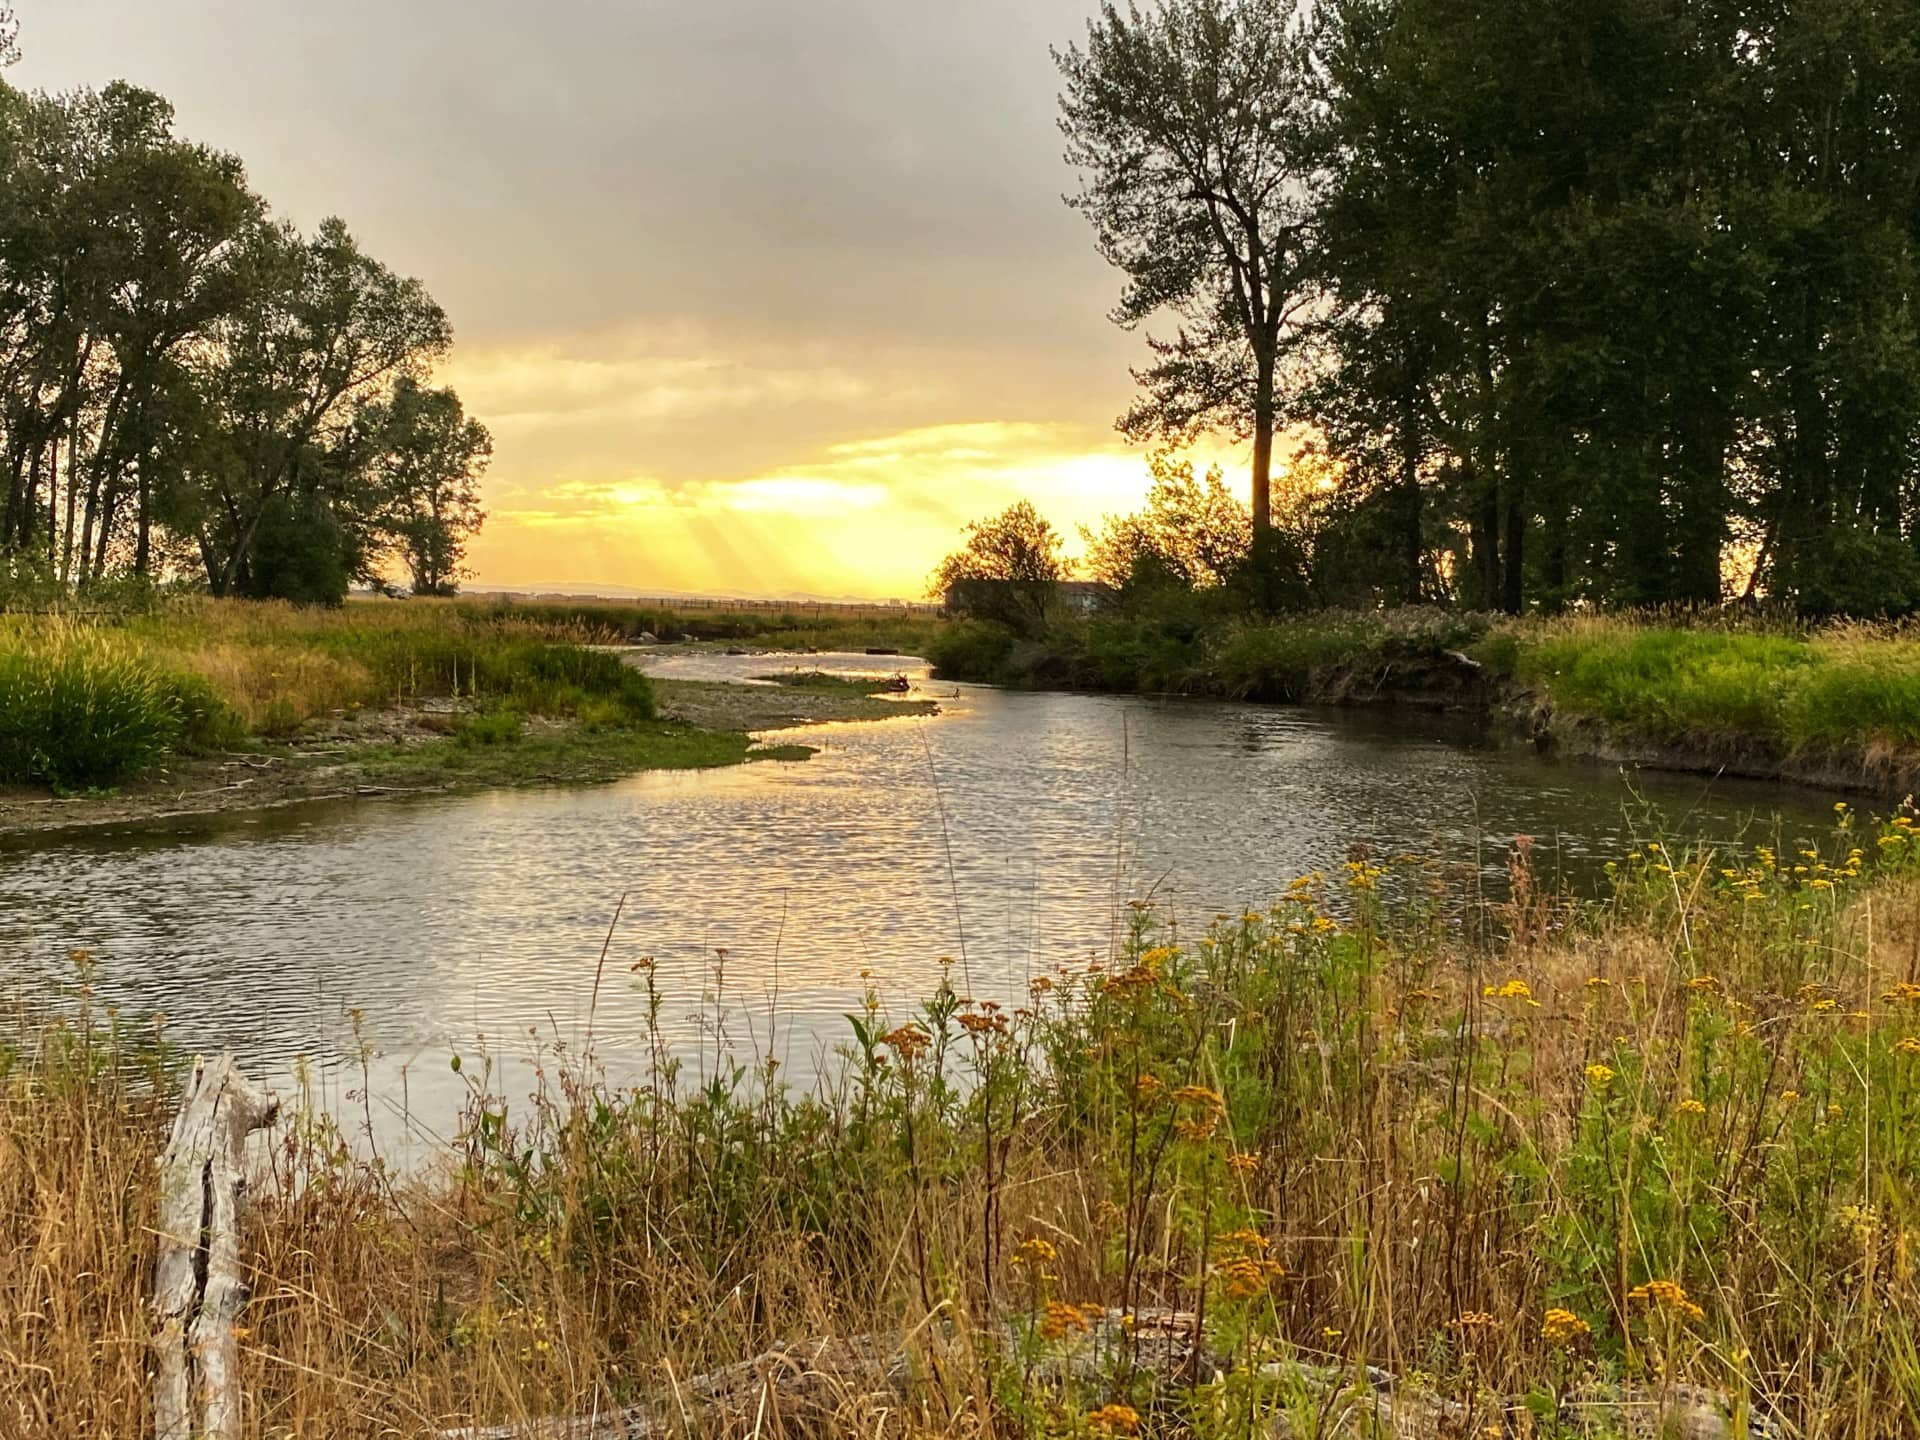 Bozeman Real Estate East Gallatin River Frontage For Sale Southwest Montana